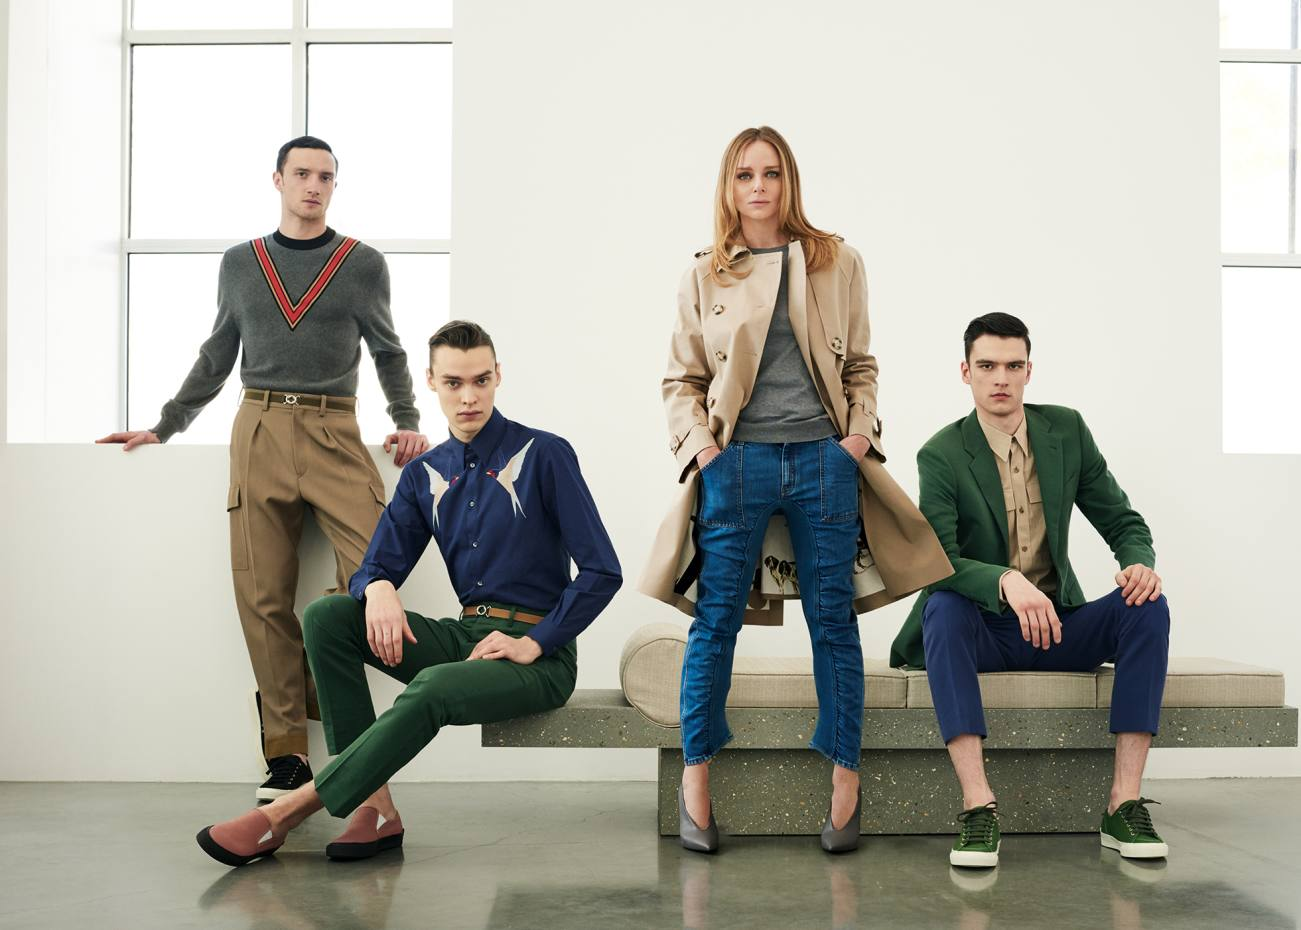 Stella McCartney with models wearing items from her debut menswear collection. From left: cotton jumper, £570, cotton trousers, £320, canvas trainers, £315, and elastic belt, £180; cotton shirt, £485, cotton trousers, £325, canvas shoes, £290,and elastic belt, £180; and cotton jacket, £840, cotton shirt, £345, cotton trousers, £325, and canvas trainers, £315